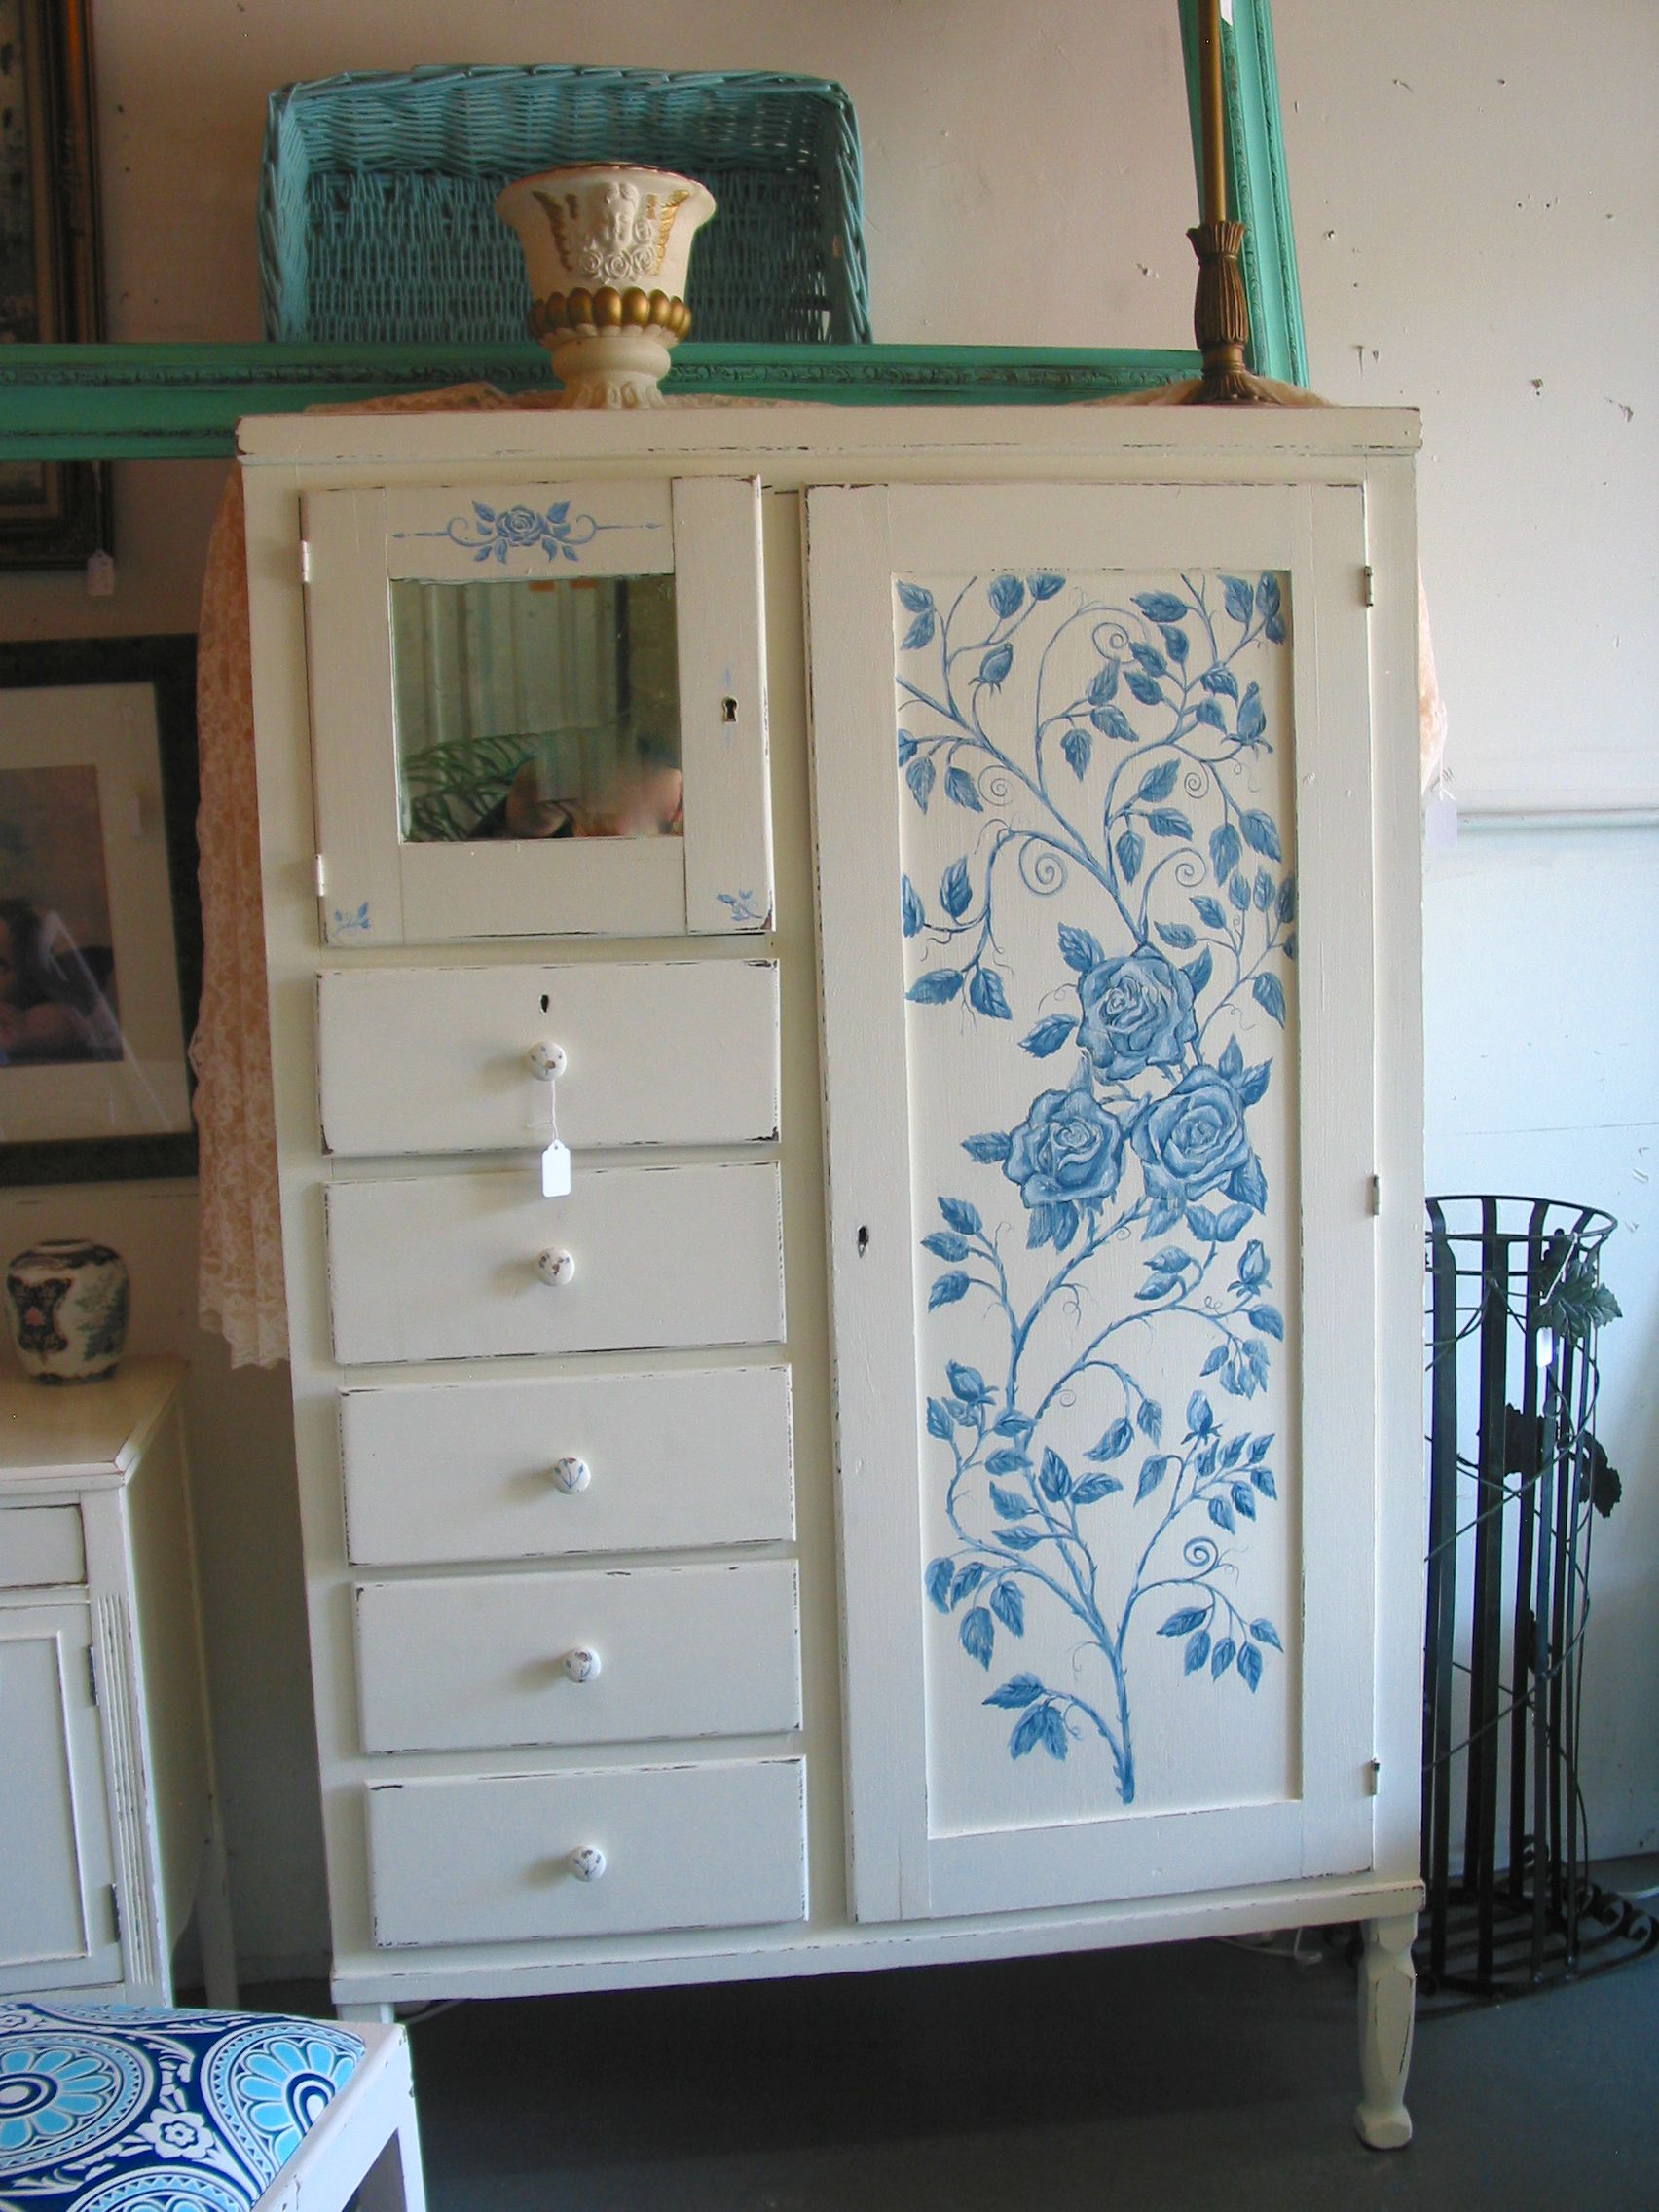 Painting furniture shabby chic - Find This Pin And More On Folkartmama Beach Decor Shabby Chic Beach Cottage Hand Painted Furniture By Folkartmama